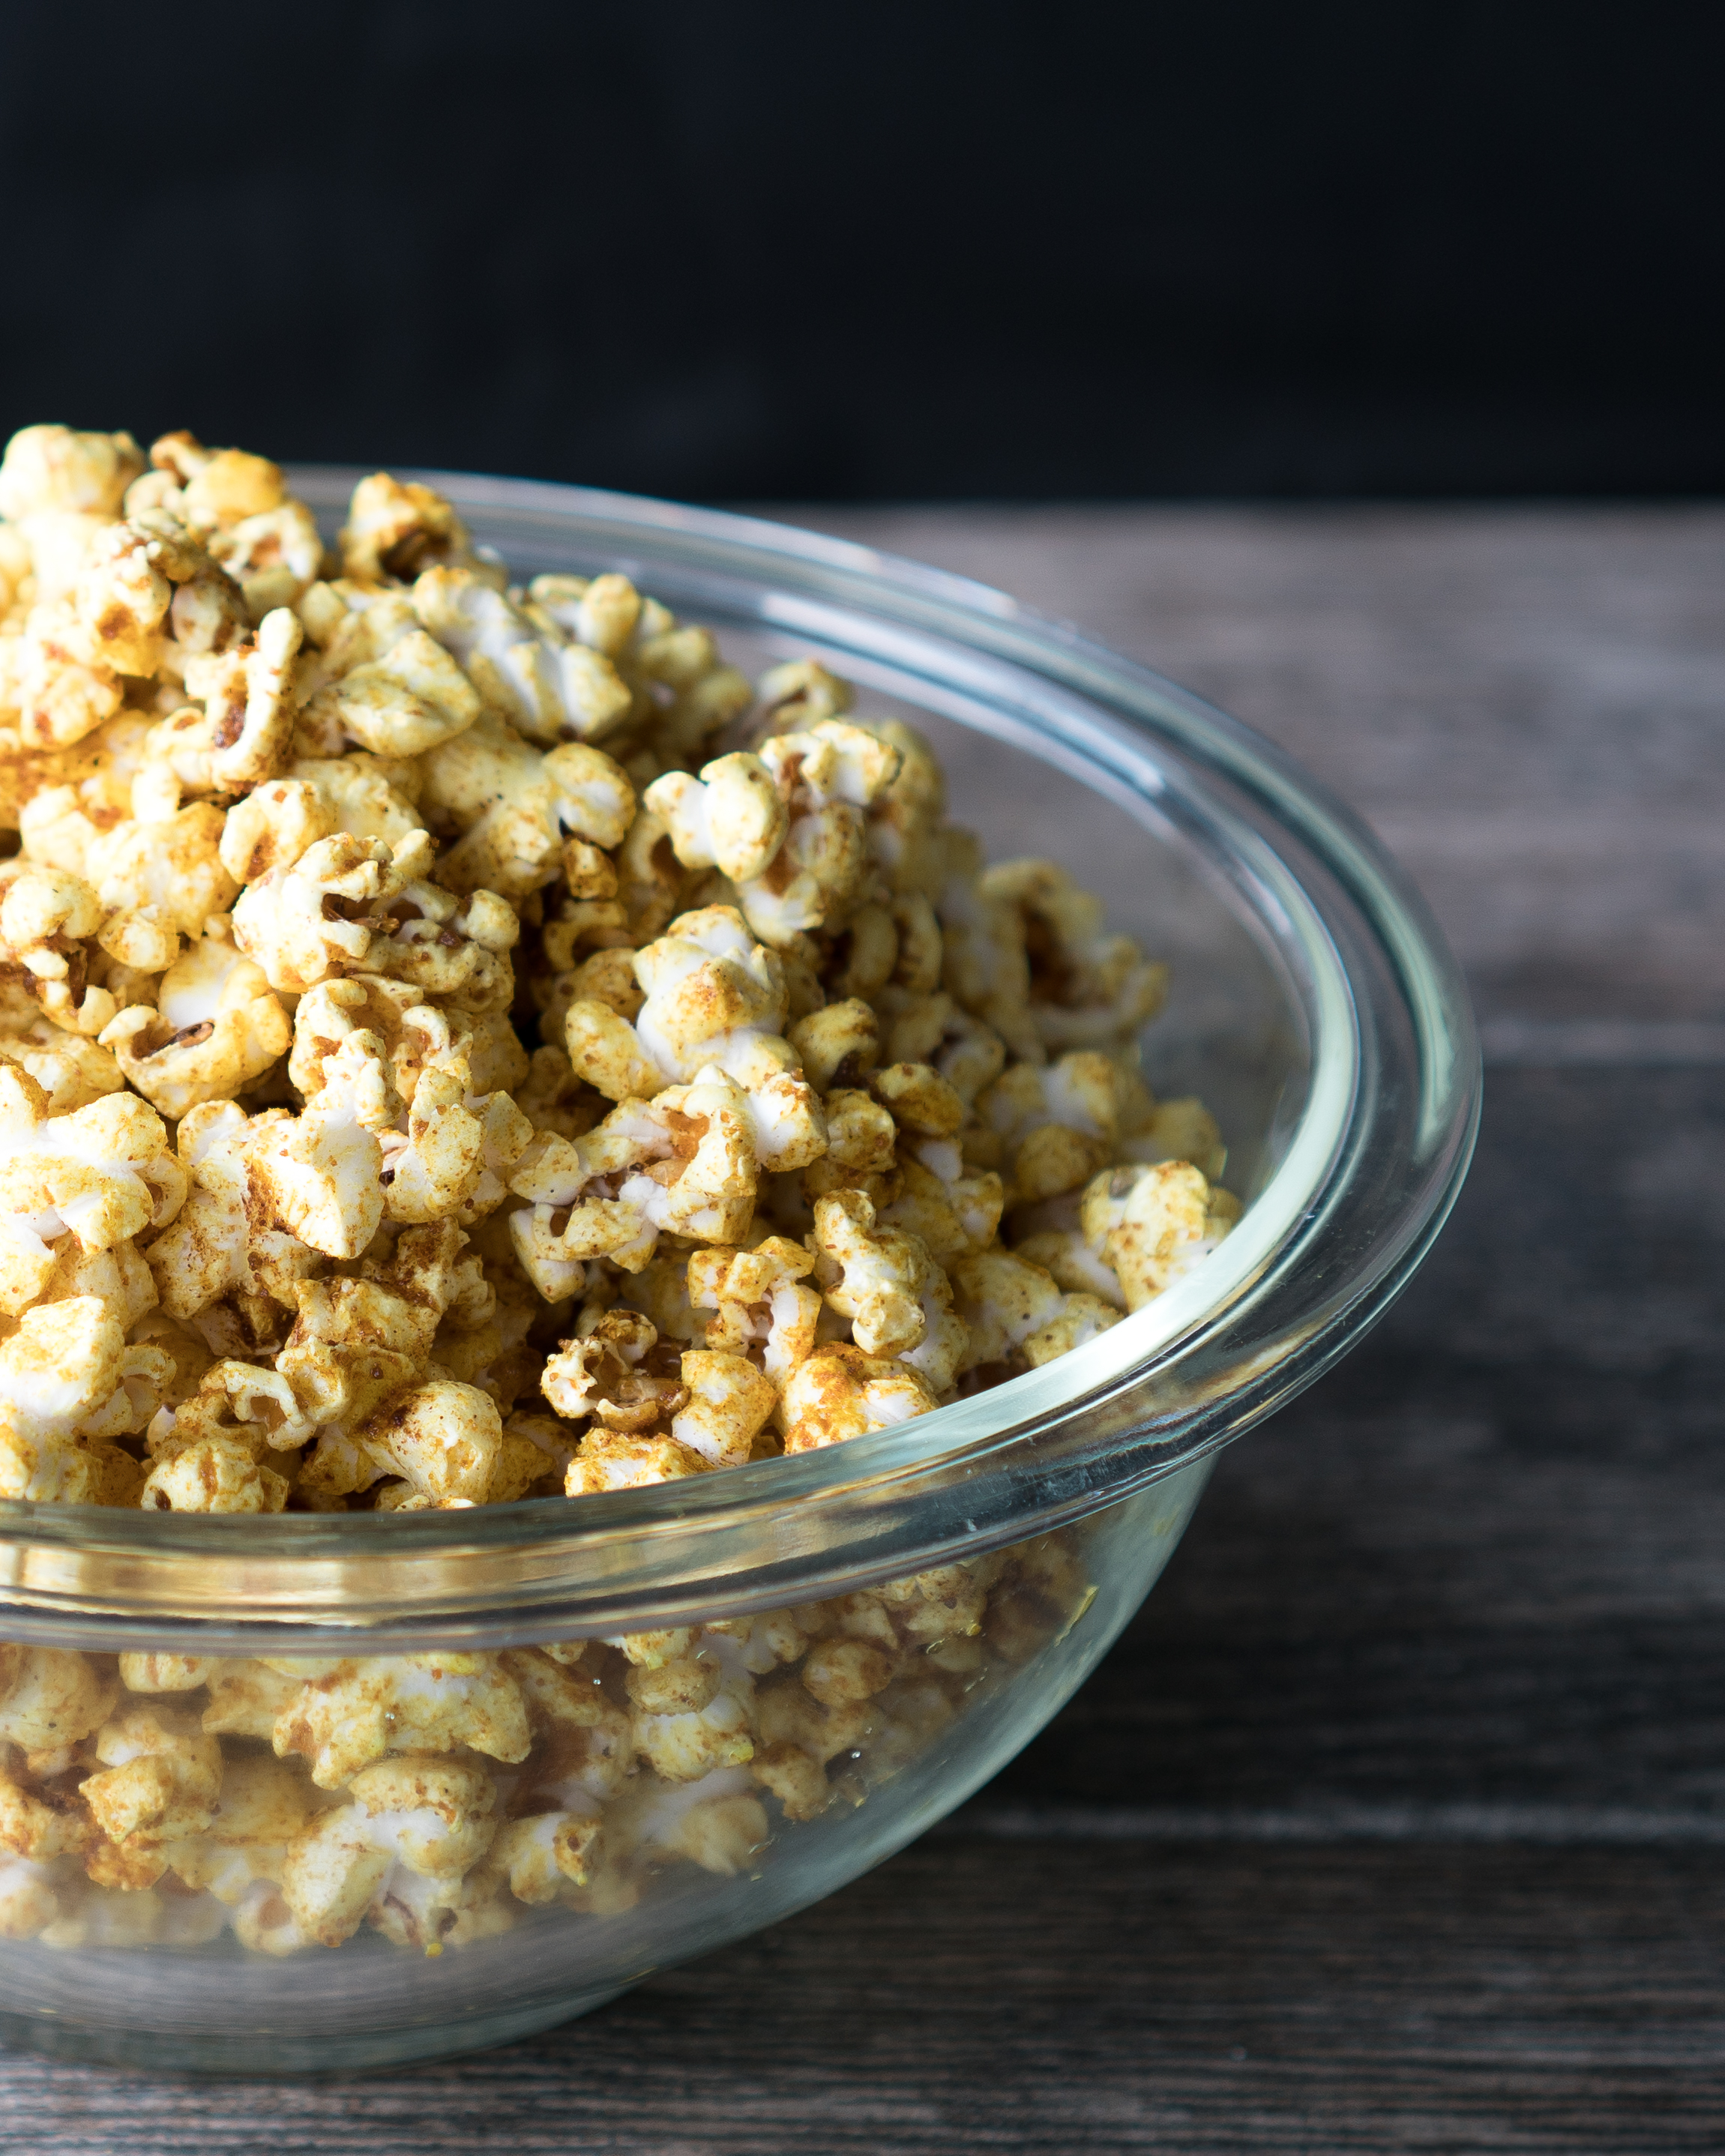 Sweet and Salty Curry Popcorn – Easy recipe for homemade Sweet and Salty Curry Popcorn. This gluten-free, vegan-friendly popcorn is spiced with curry powder, garlic powder, cinnamon, coconut sugar, and cayenne! Popped in coconut oil for a dose of healthy fats, this is perfect for at home movie nights or afternoon snacking! ♥ | freeyourfork.com